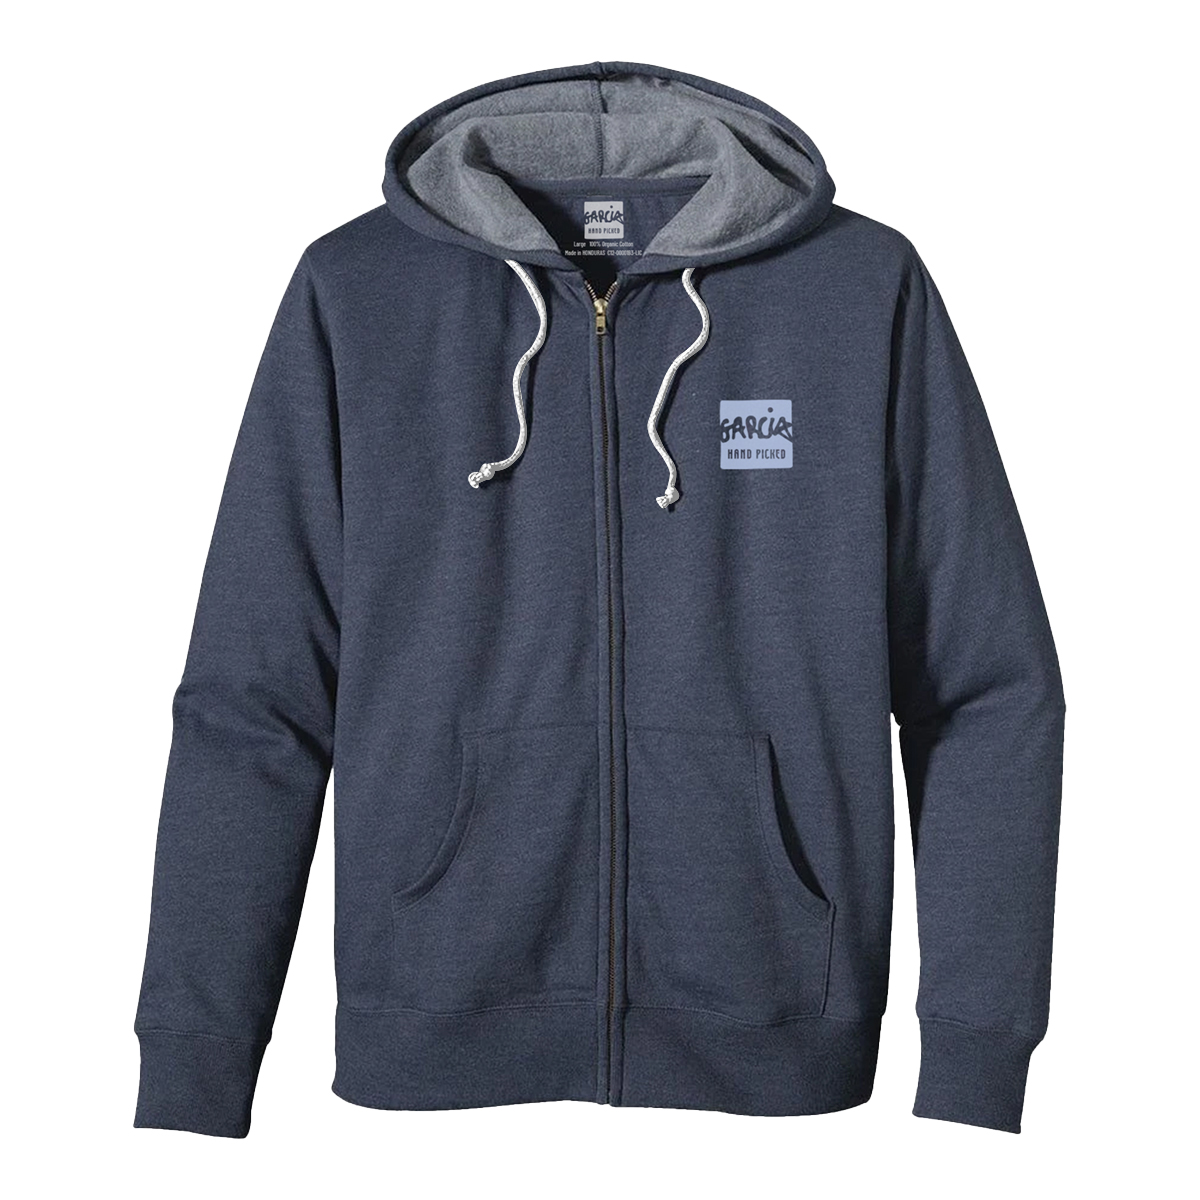 Garcia Hand Picked Opt For Fun Hoodie